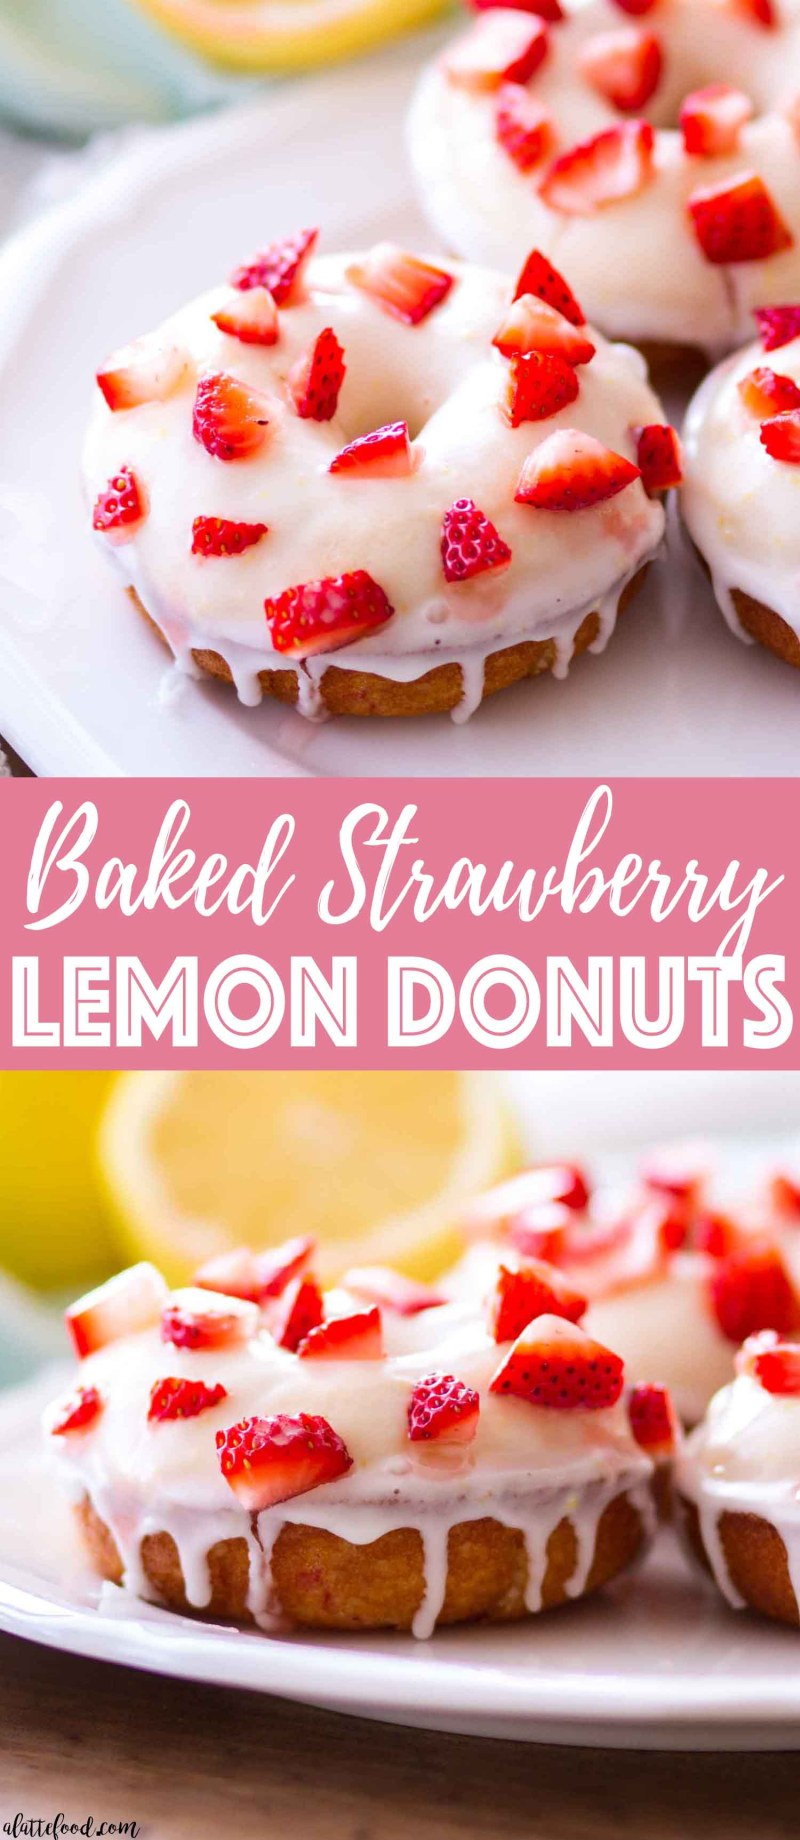 These homemade baked strawberry lemon donuts are sweet, tangy, and the perfect spring breakfast. This easy baked donut recipe is filled with fresh strawberries and topped with a lemon glaze. Plus, a step-by-step video! Yay.